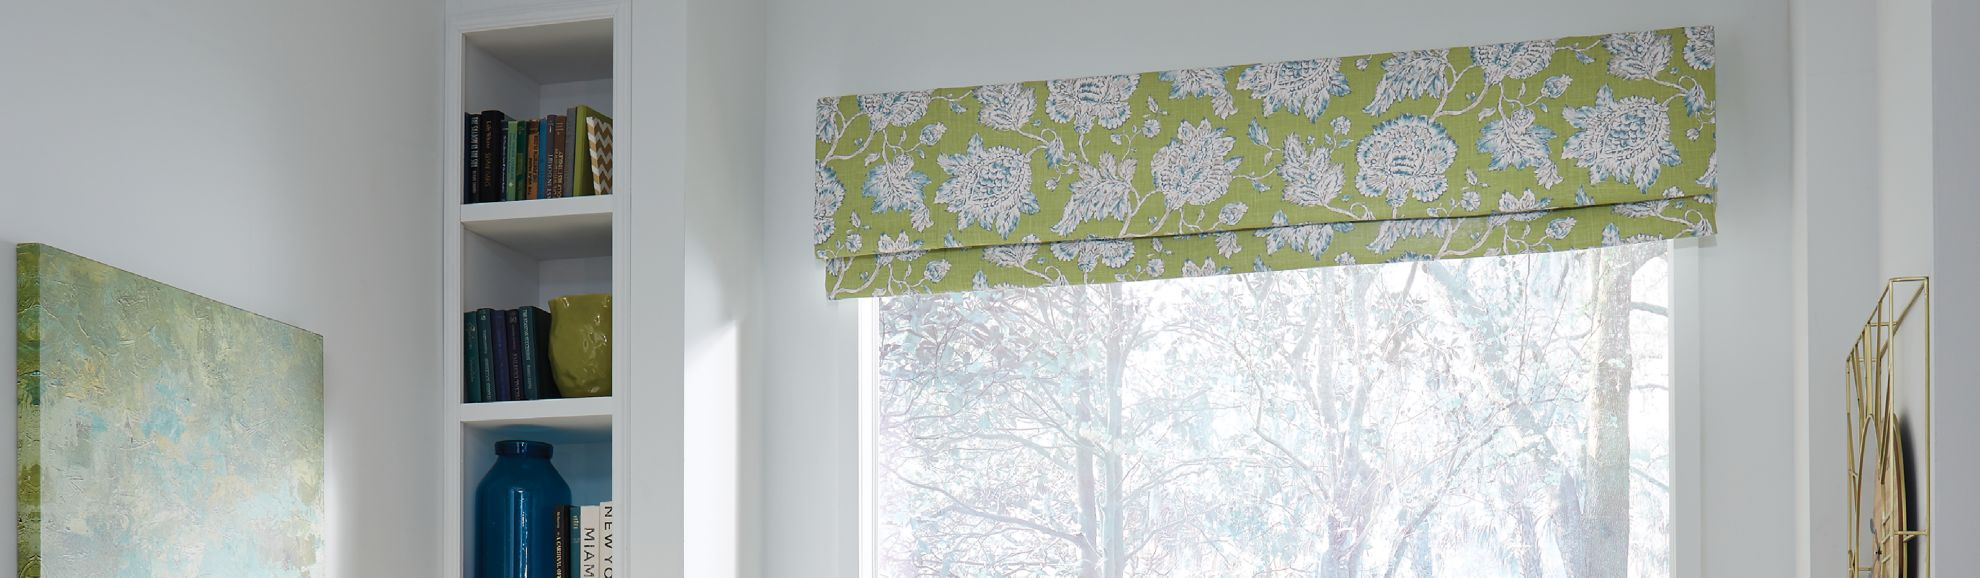 Board-Mounted Valances - Judith - Bedroom